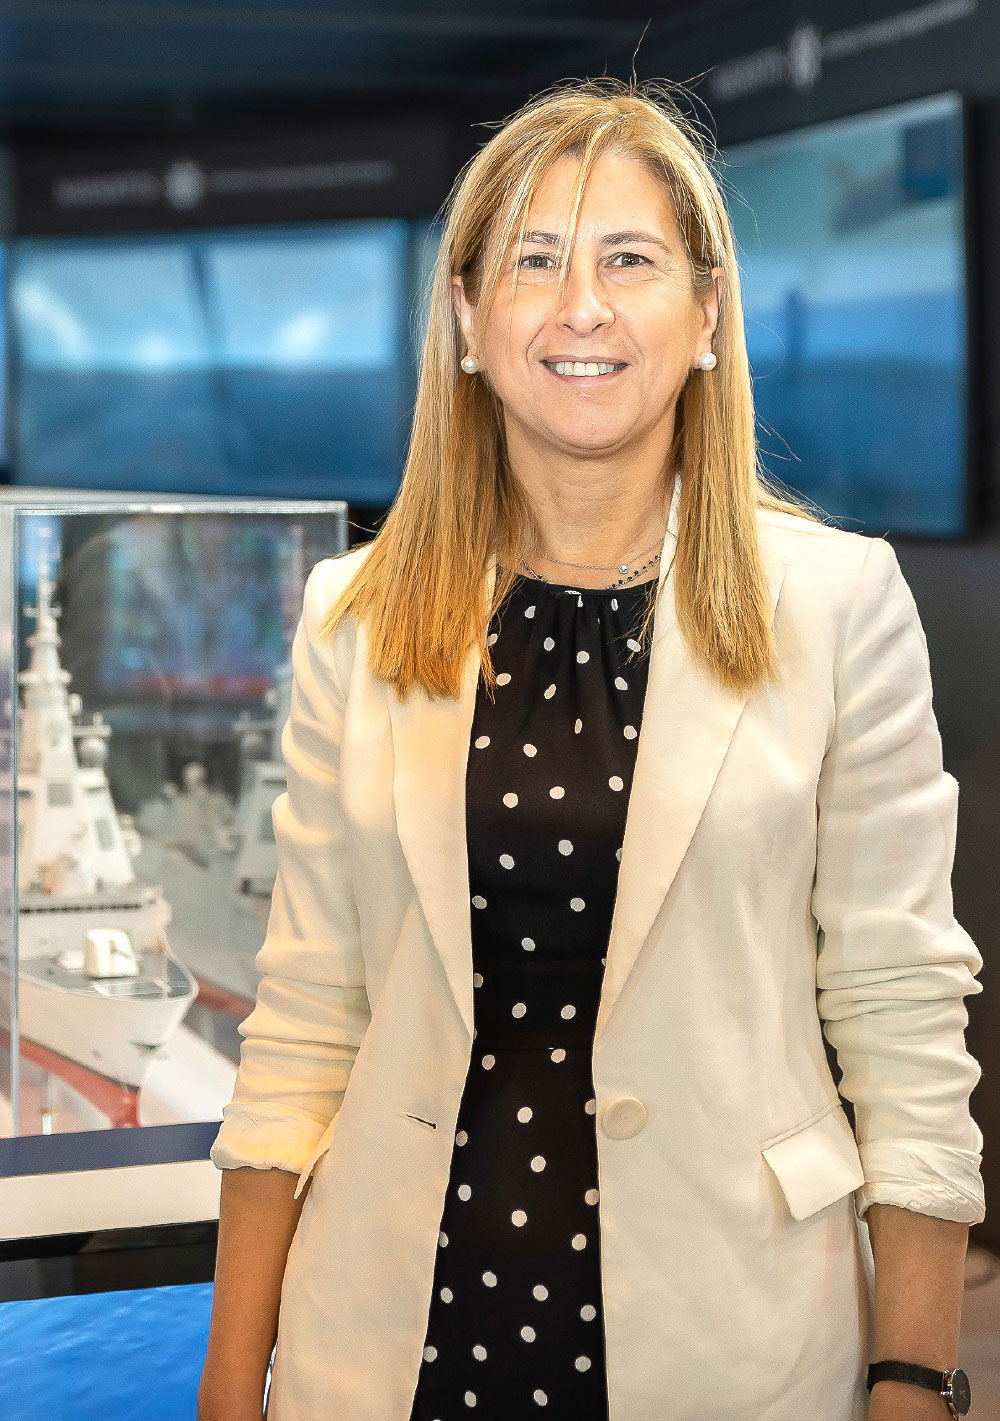 Navantia - Ambitious Projects Where Experience Matters